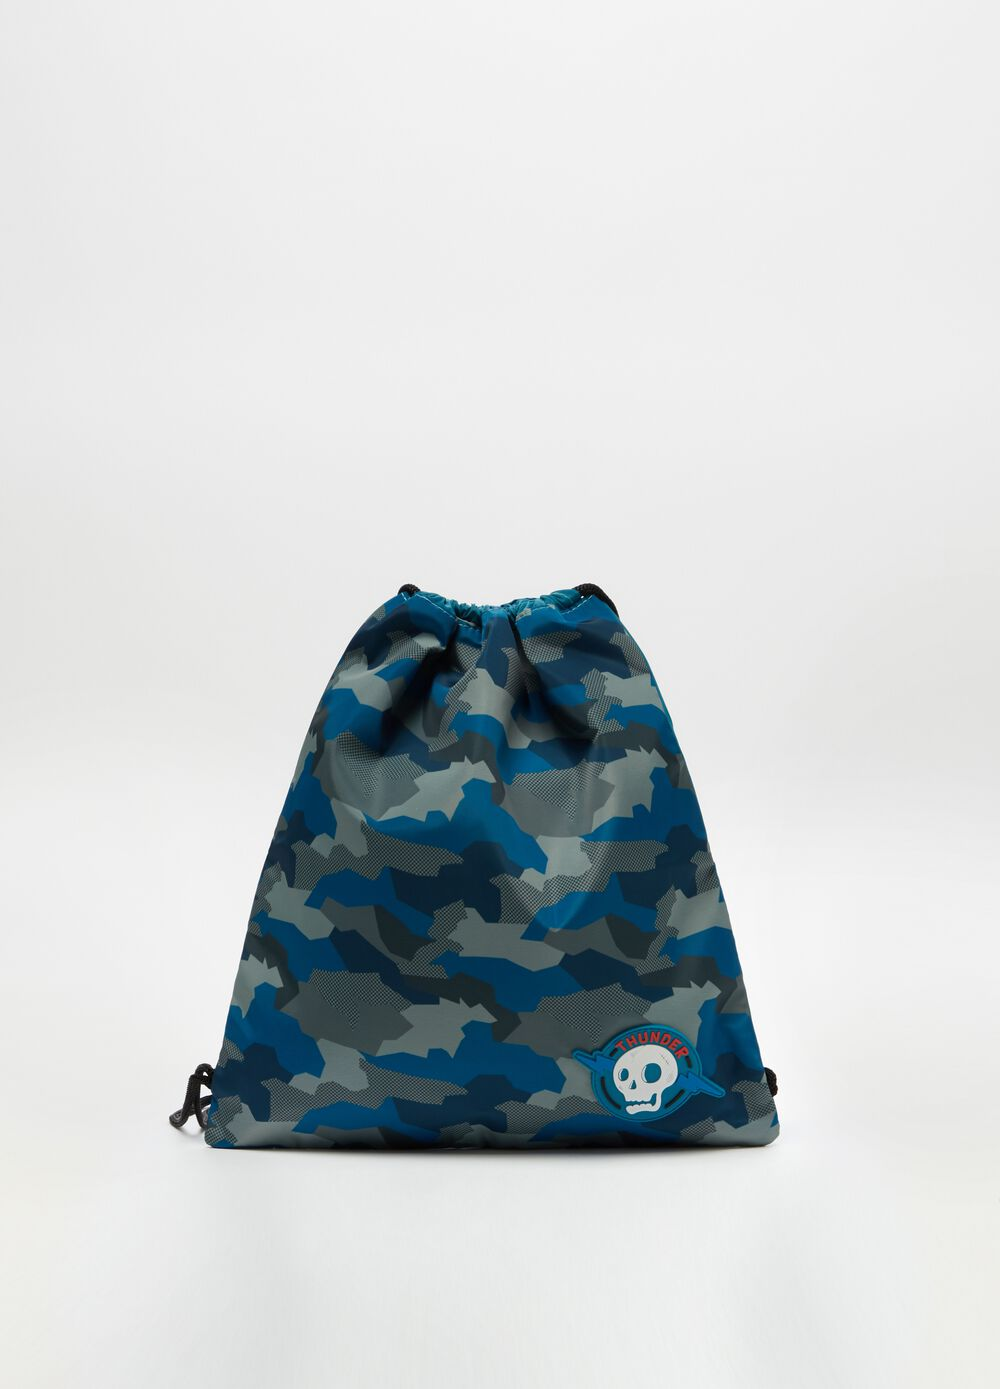 Camouflage rain backpack with skull